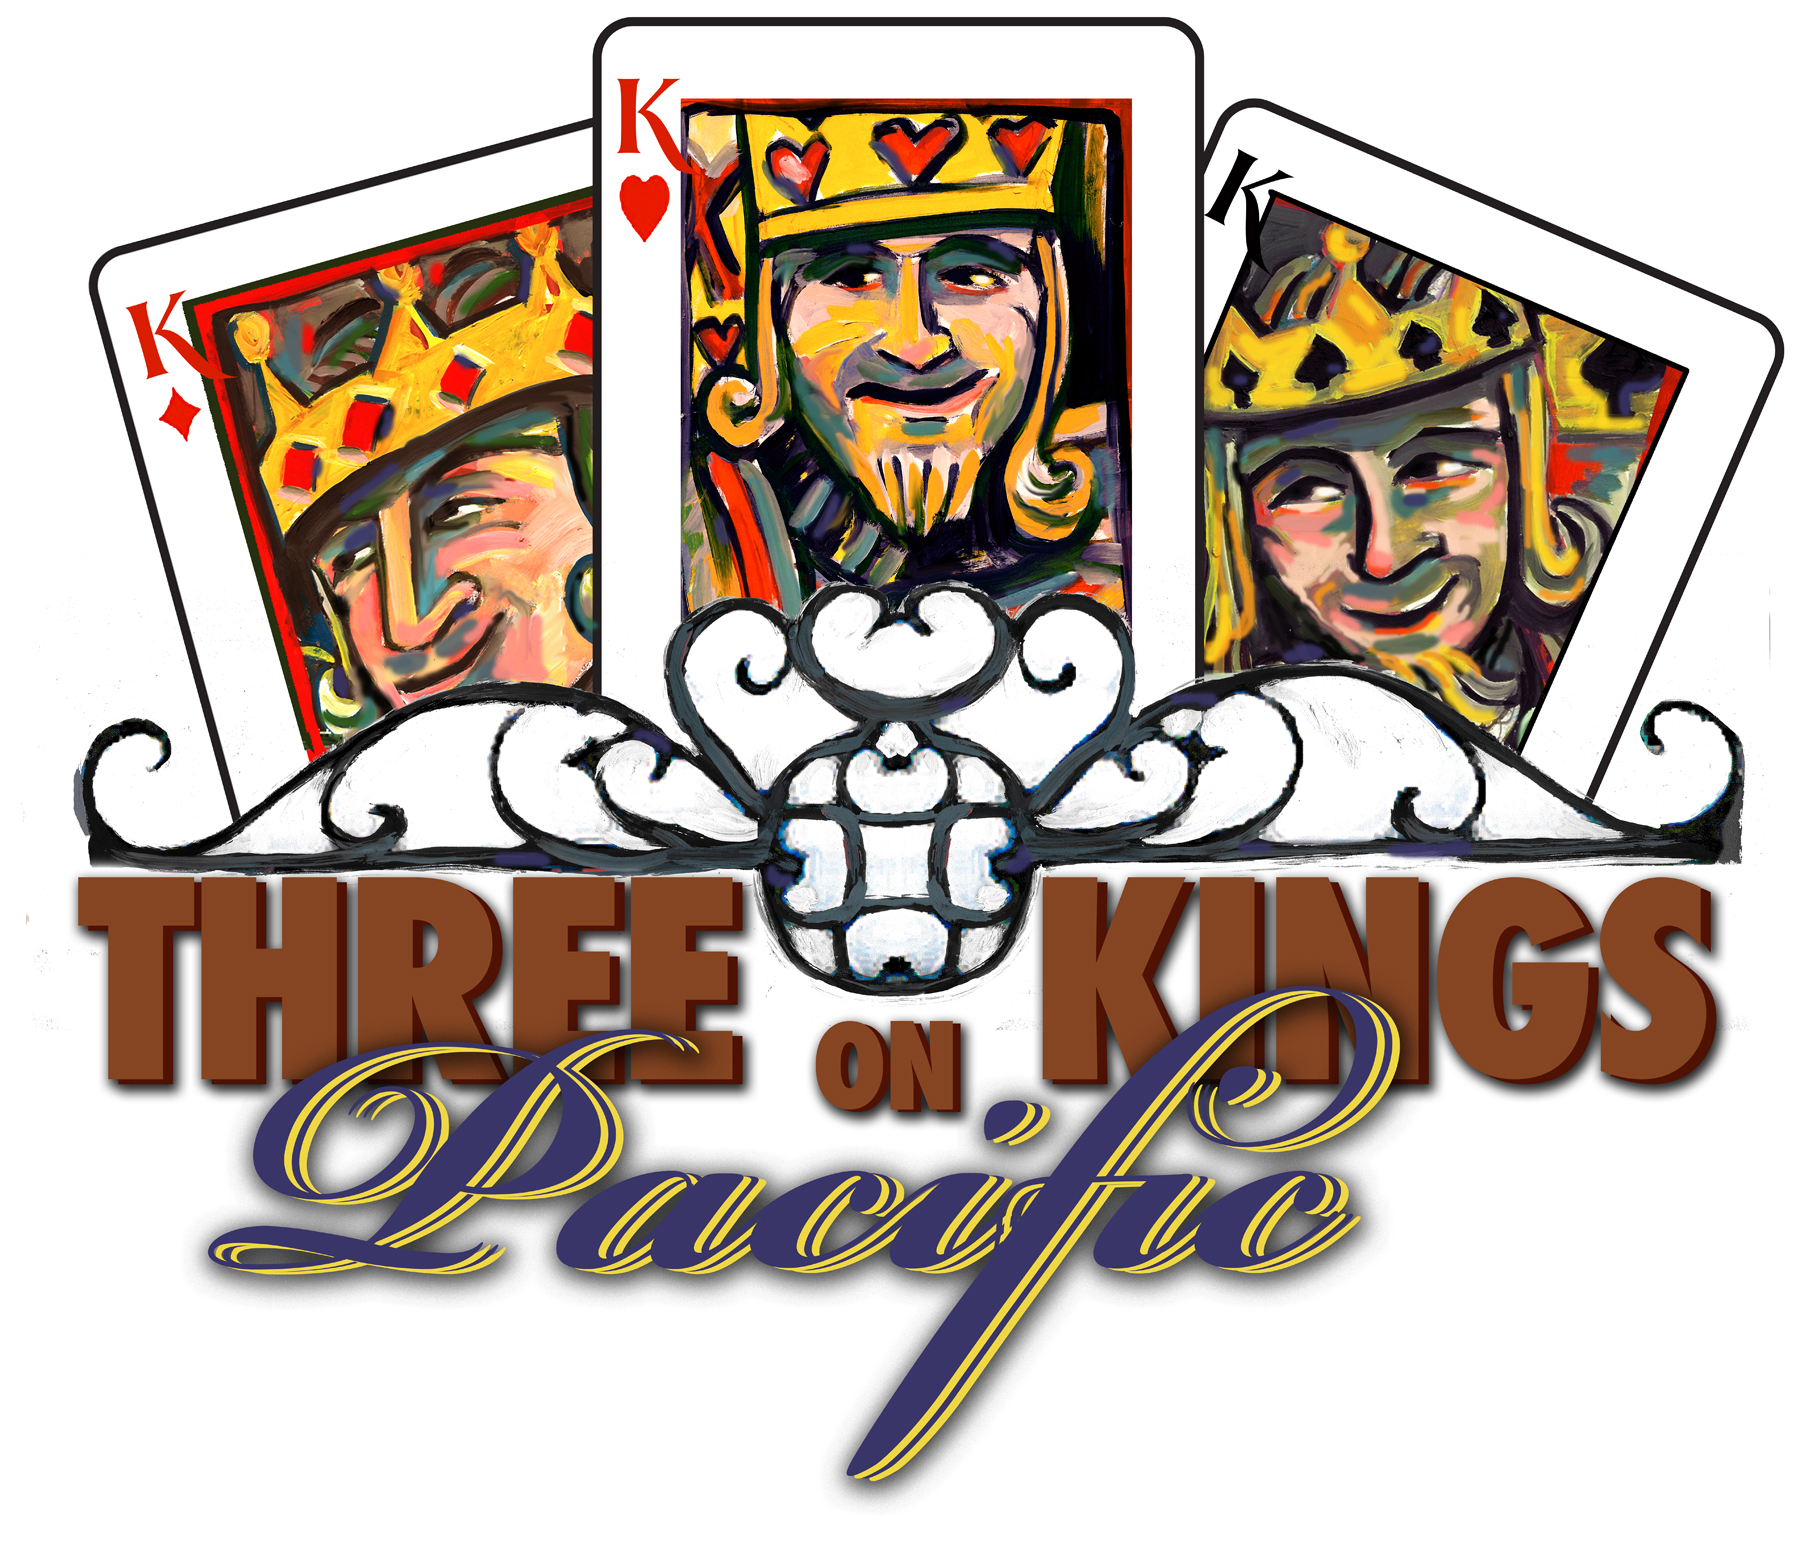 3 Kings on Pacific